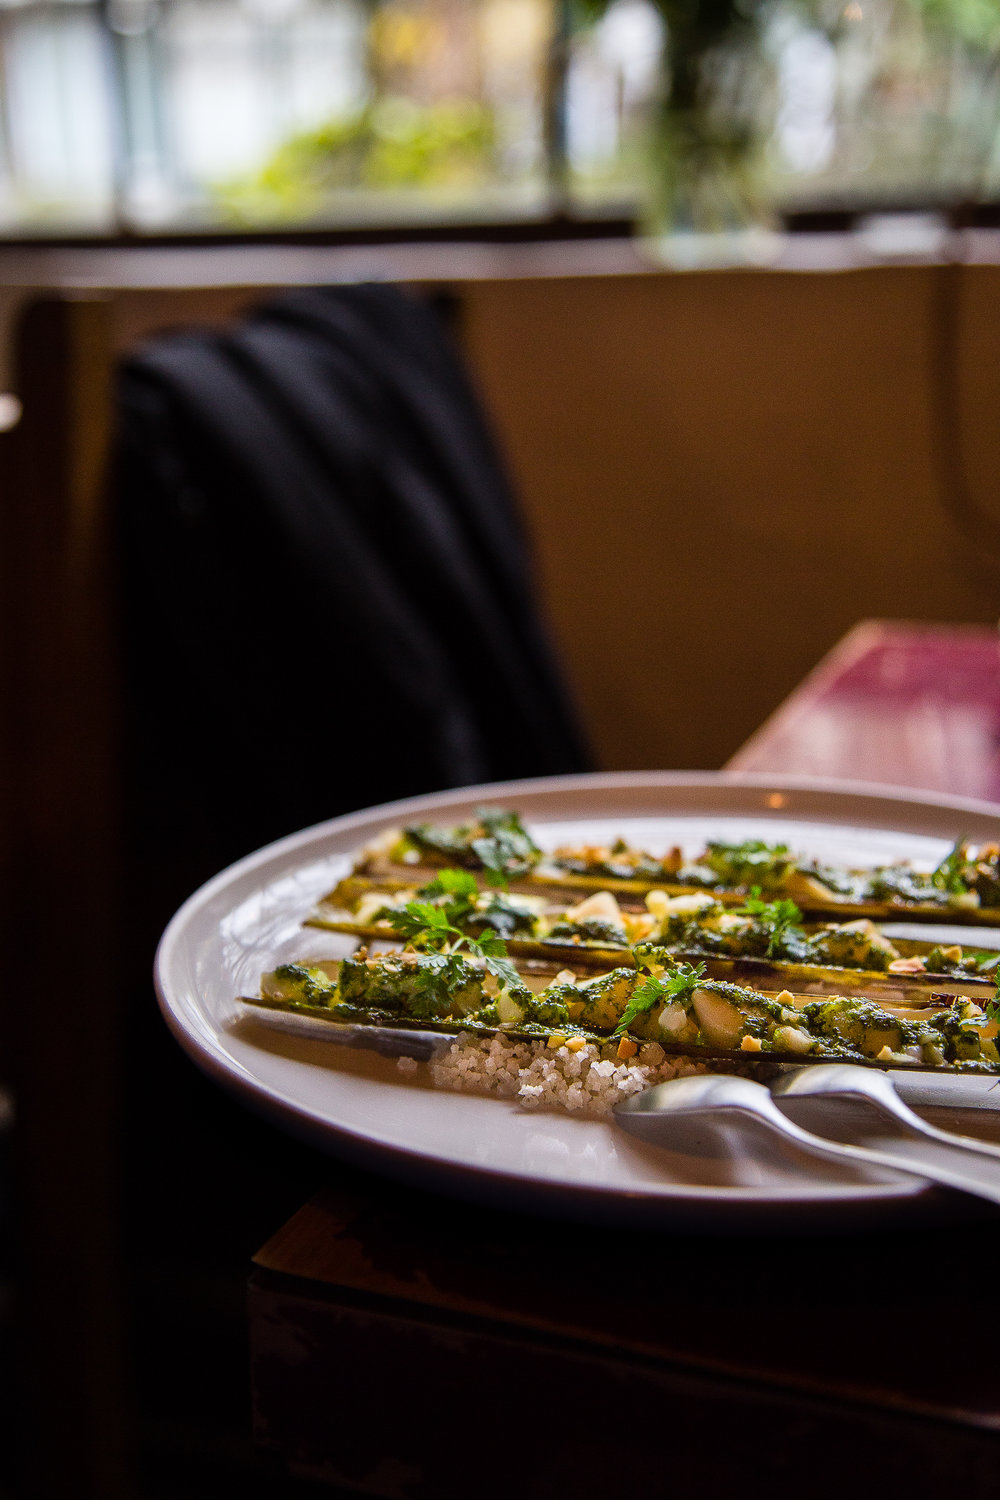 Copy of Razor Clams with Garlicky Herb Butter